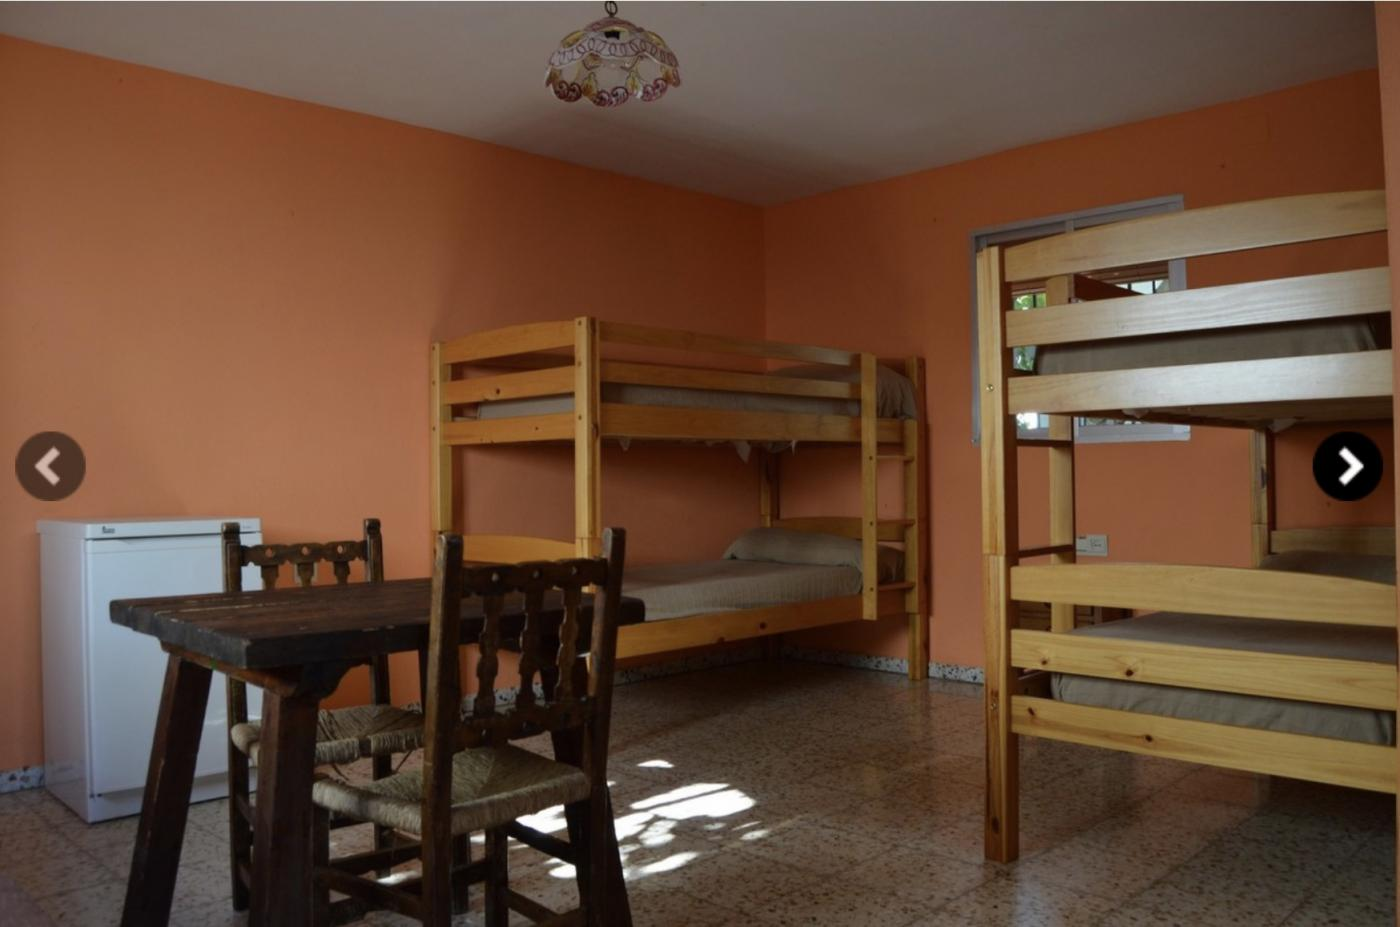 9 Bedroom Hotels and hostal for Sale in Alora